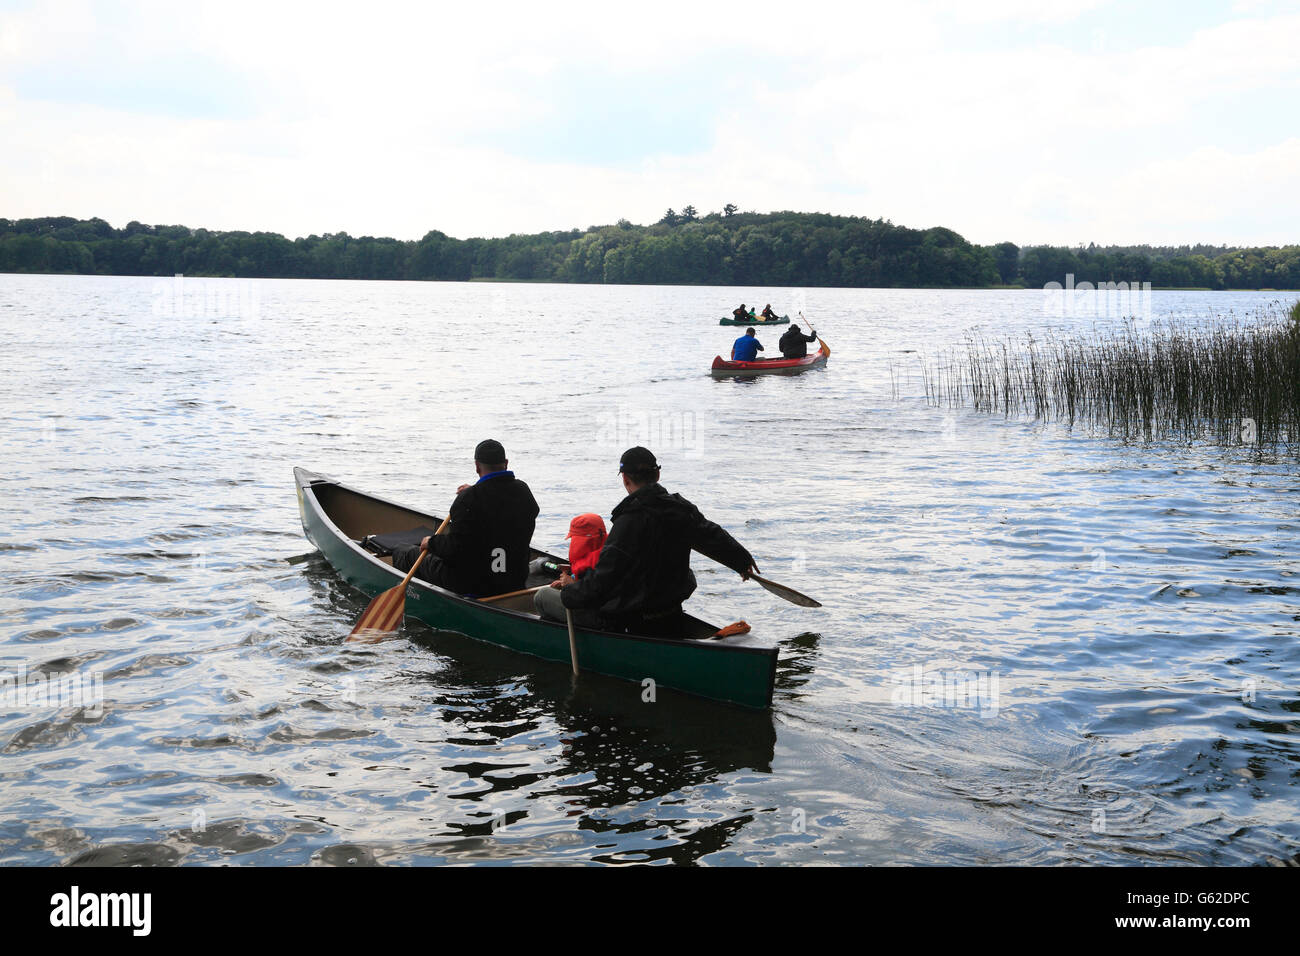 Canoe trip on Lake Schaalsee, Mecklenburg Western Pomerania, Germany, Europe - Stock Image